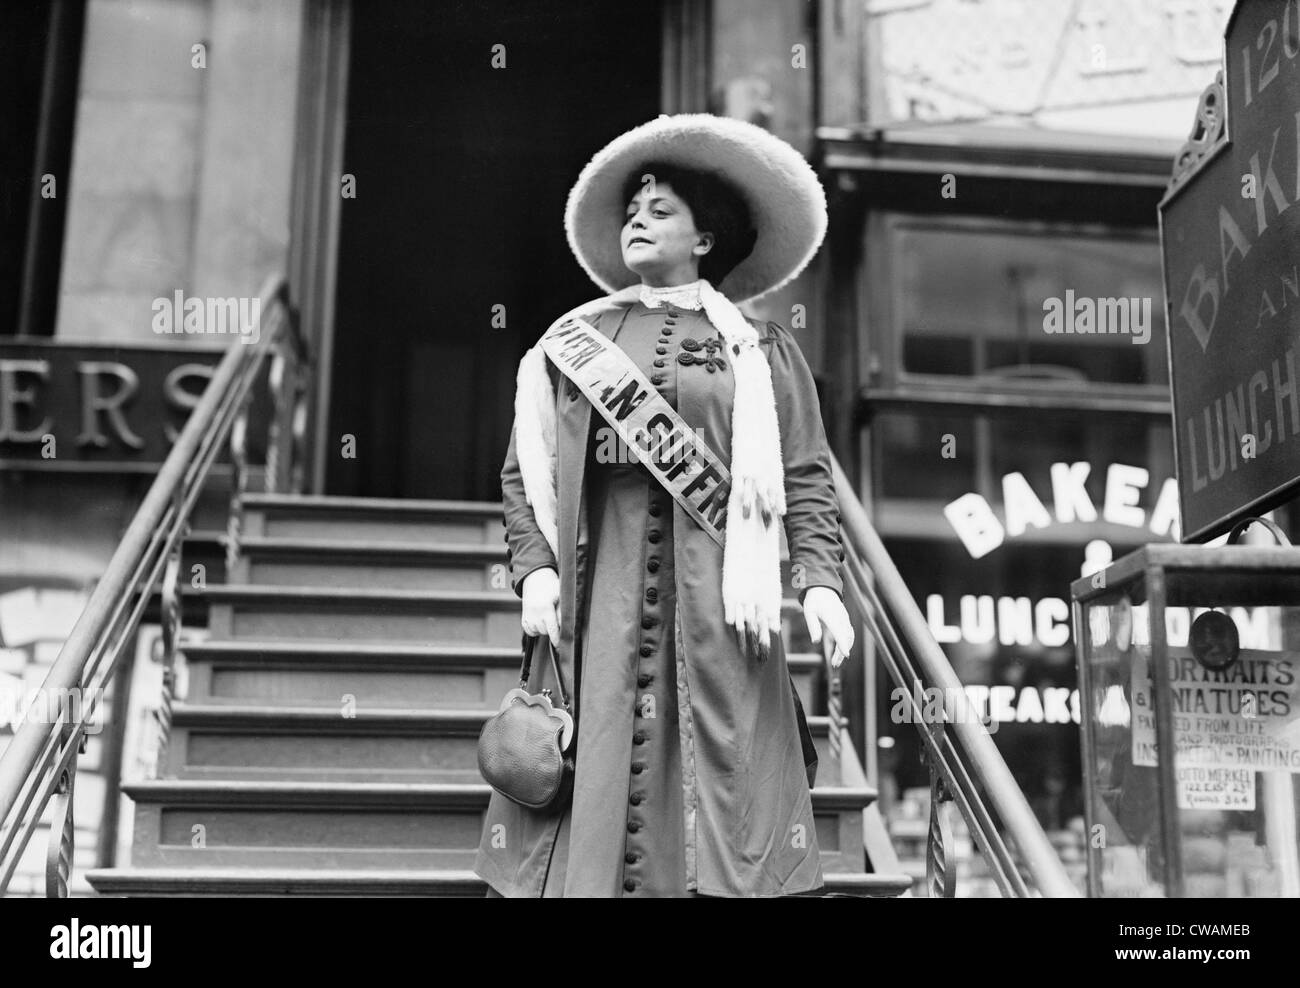 Trixie Friganza (1870 – 1955), vaudeville musical star, supported and demonstrated in the U.S.  Suffragist movement. - Stock Image